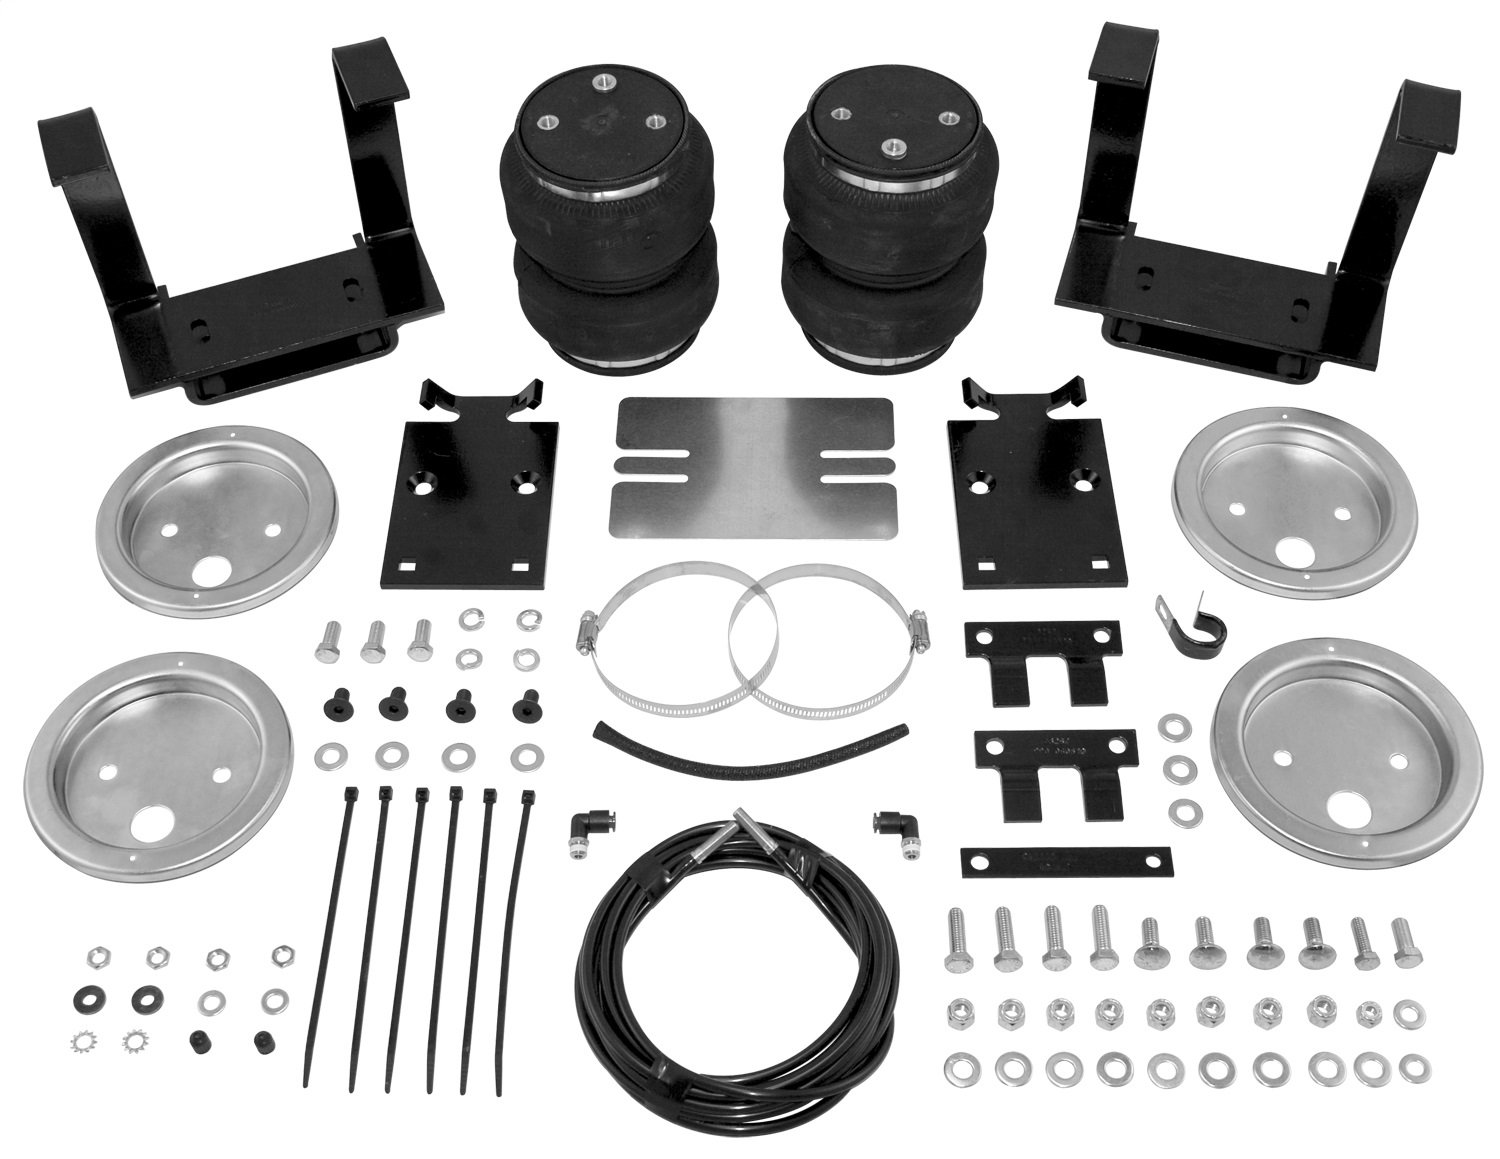 Air Lift 57286 LoadLifter 5000 Rear Leaf Spring Leveling Kit by Air Lift (Image #1)